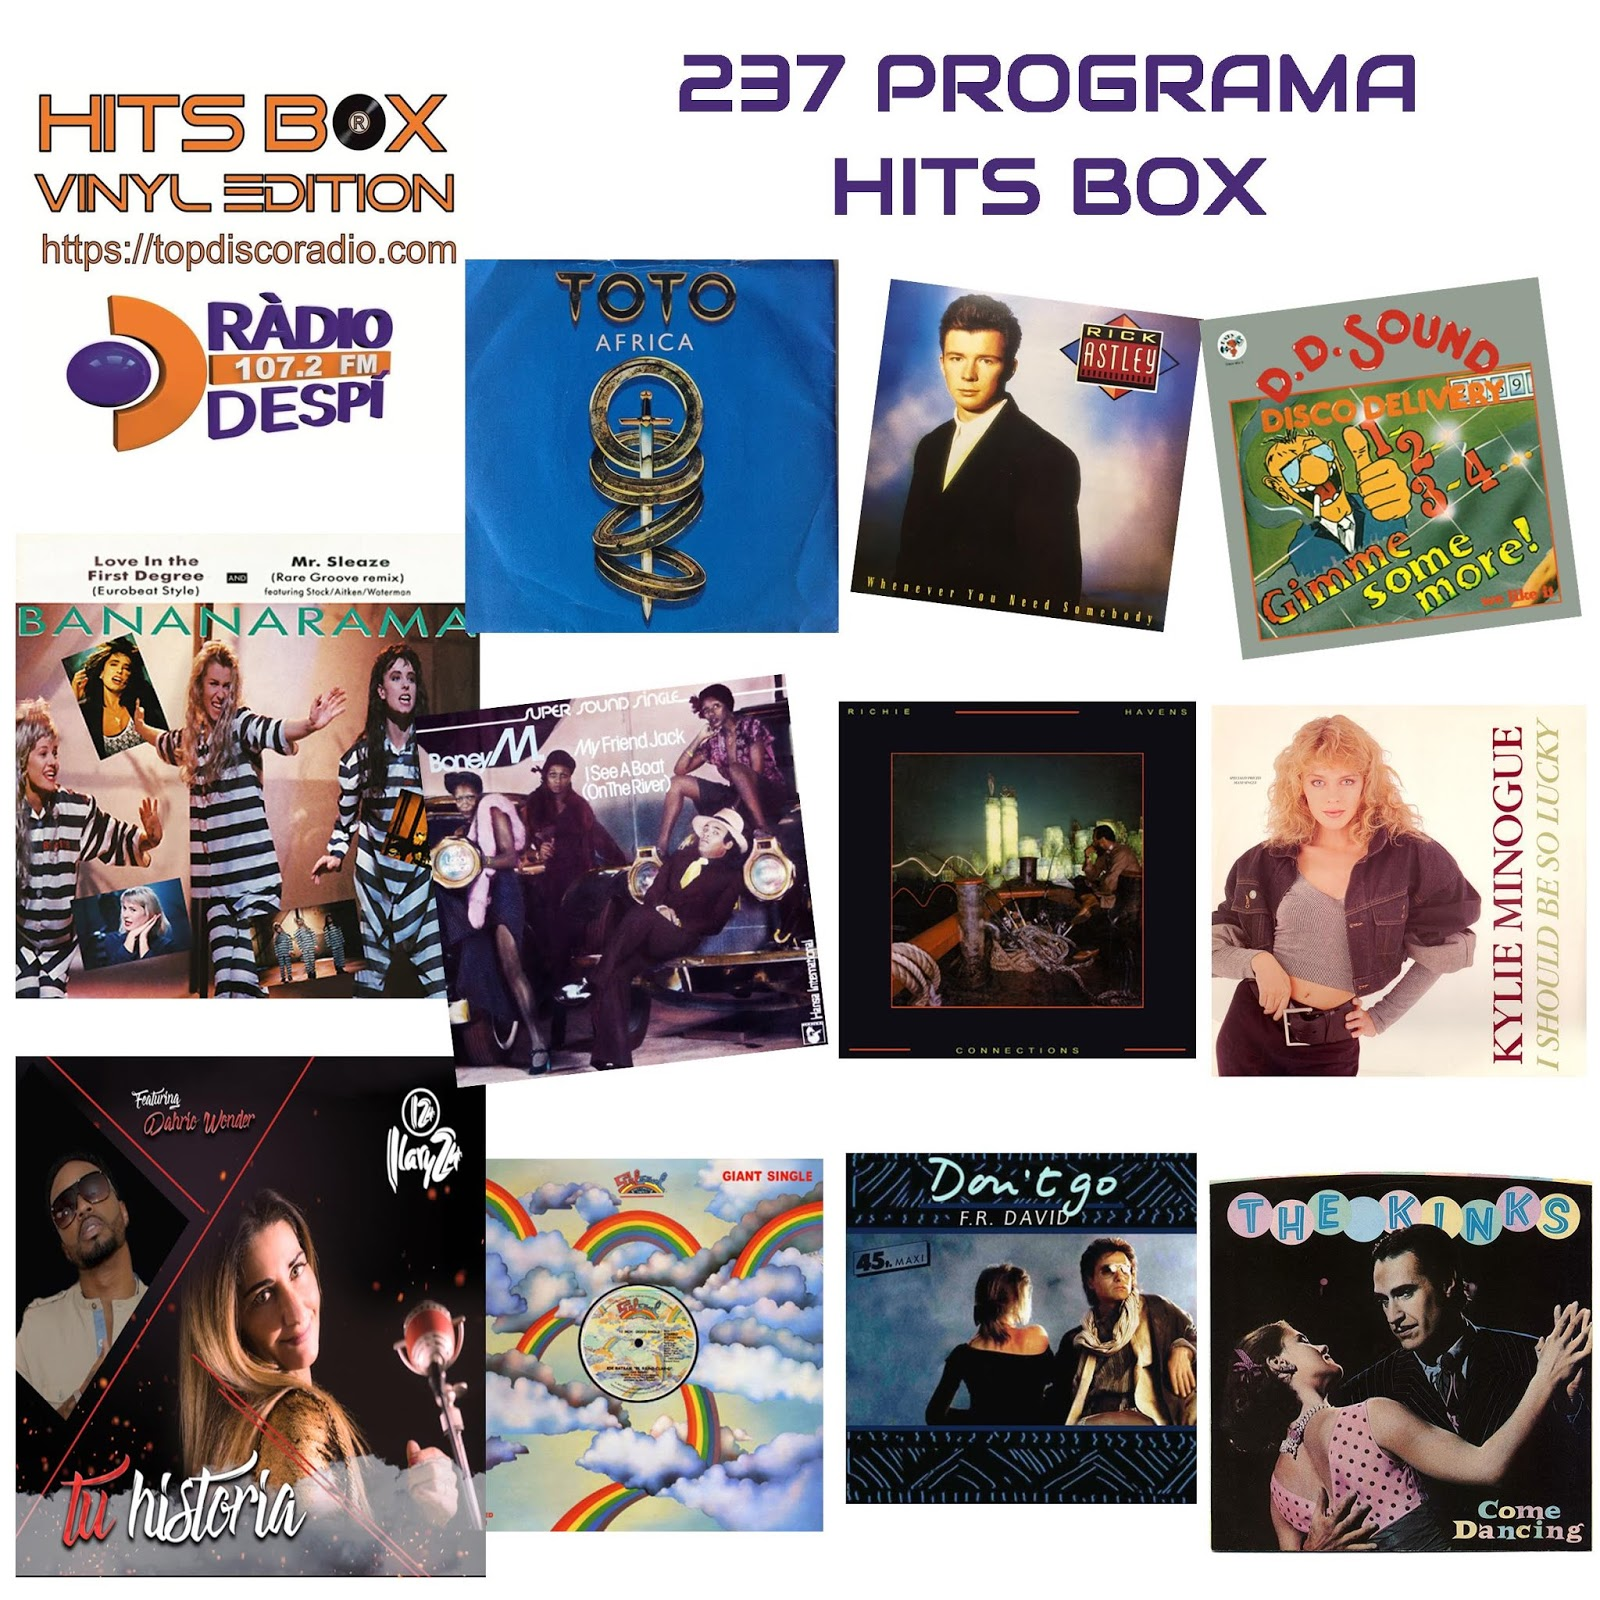 237 Programa Hits Box Vinyl Edition